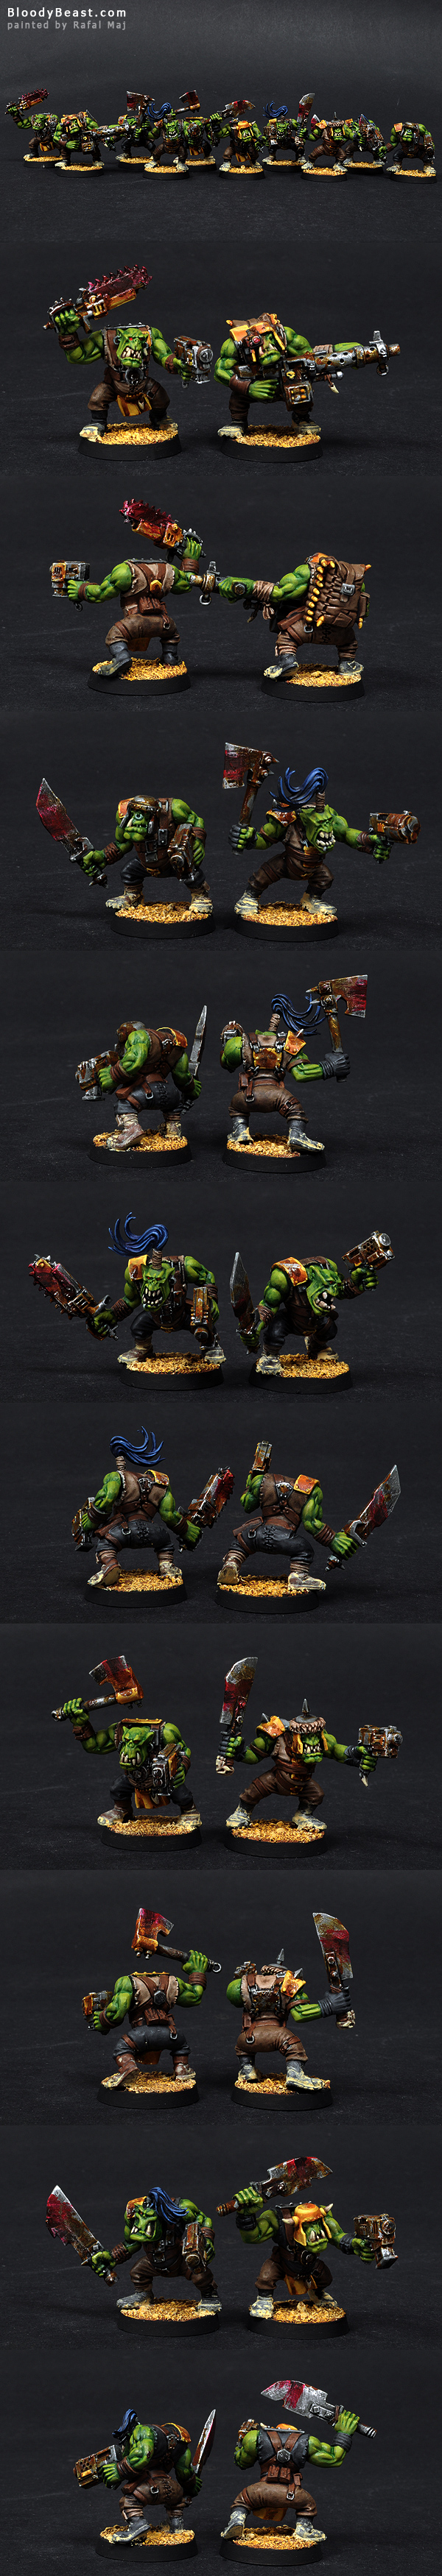 Ork Slugga Boyz painted by Rafal Maj (BloodyBeast.com)